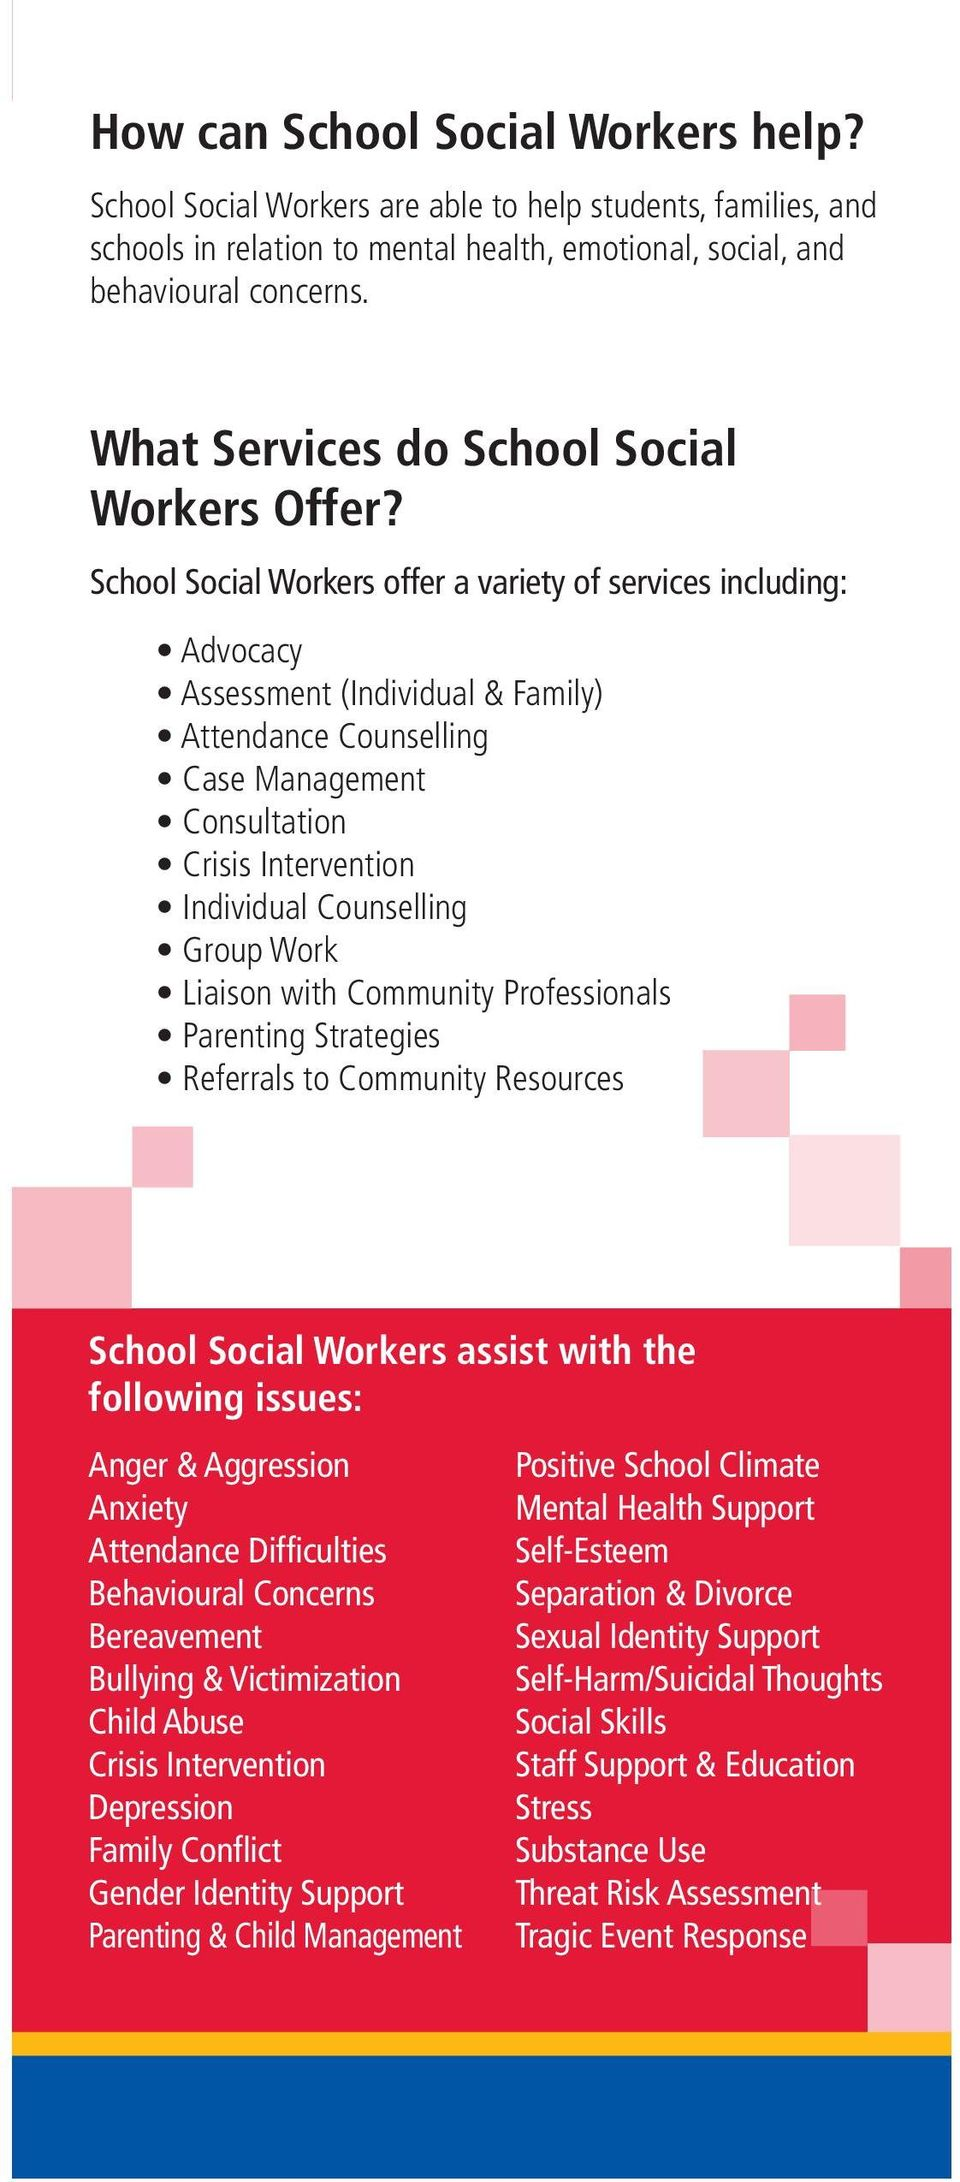 School Social Workers offer a variety of services including: Advocacy Assessment (Individual & Family) Attendance Counselling Case Management Consultation Crisis Intervention Individual Counselling